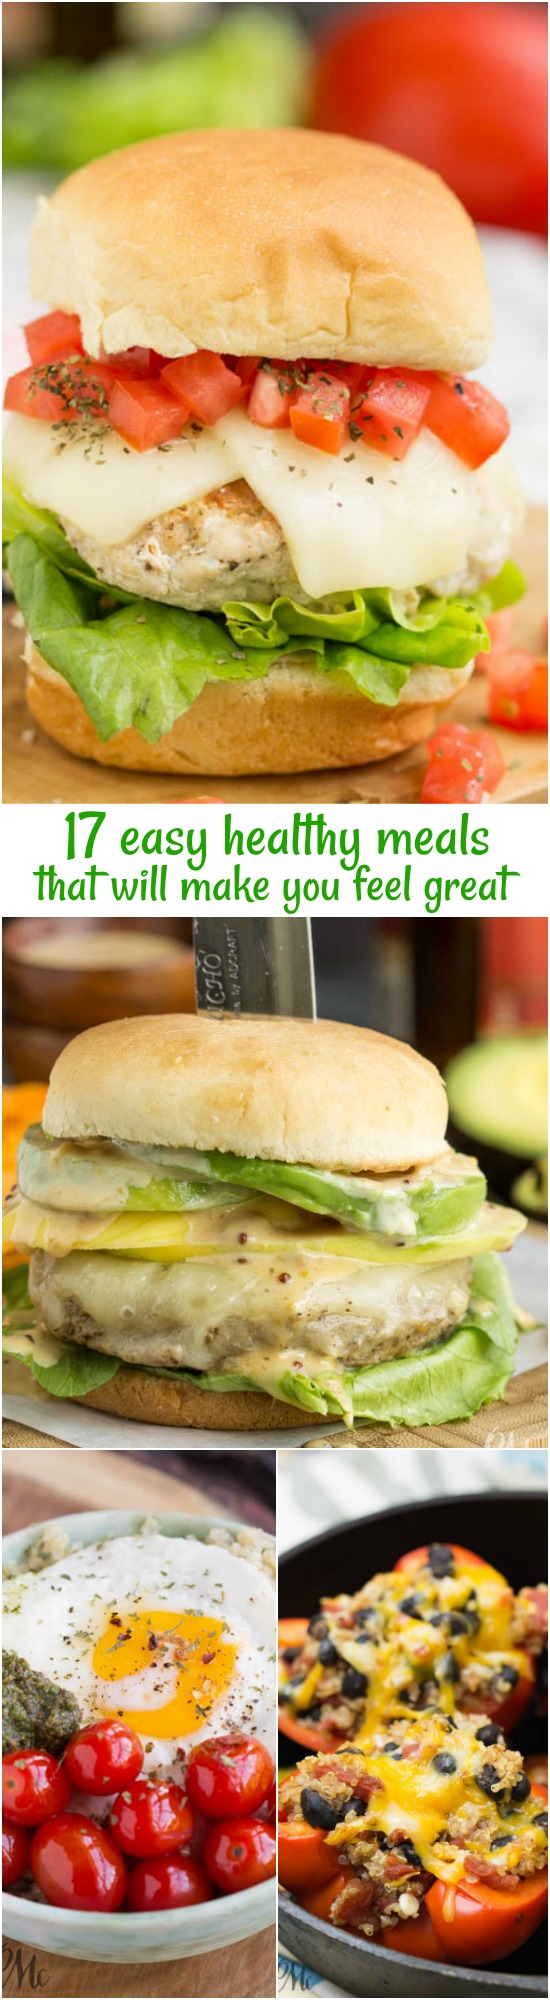 Is your resolution to start eating healthier? Do you want to make some changes in your diet? Start your year with healthy deliciousness with my 17 Easy Healthy Meals that Will Make You Feel Great!